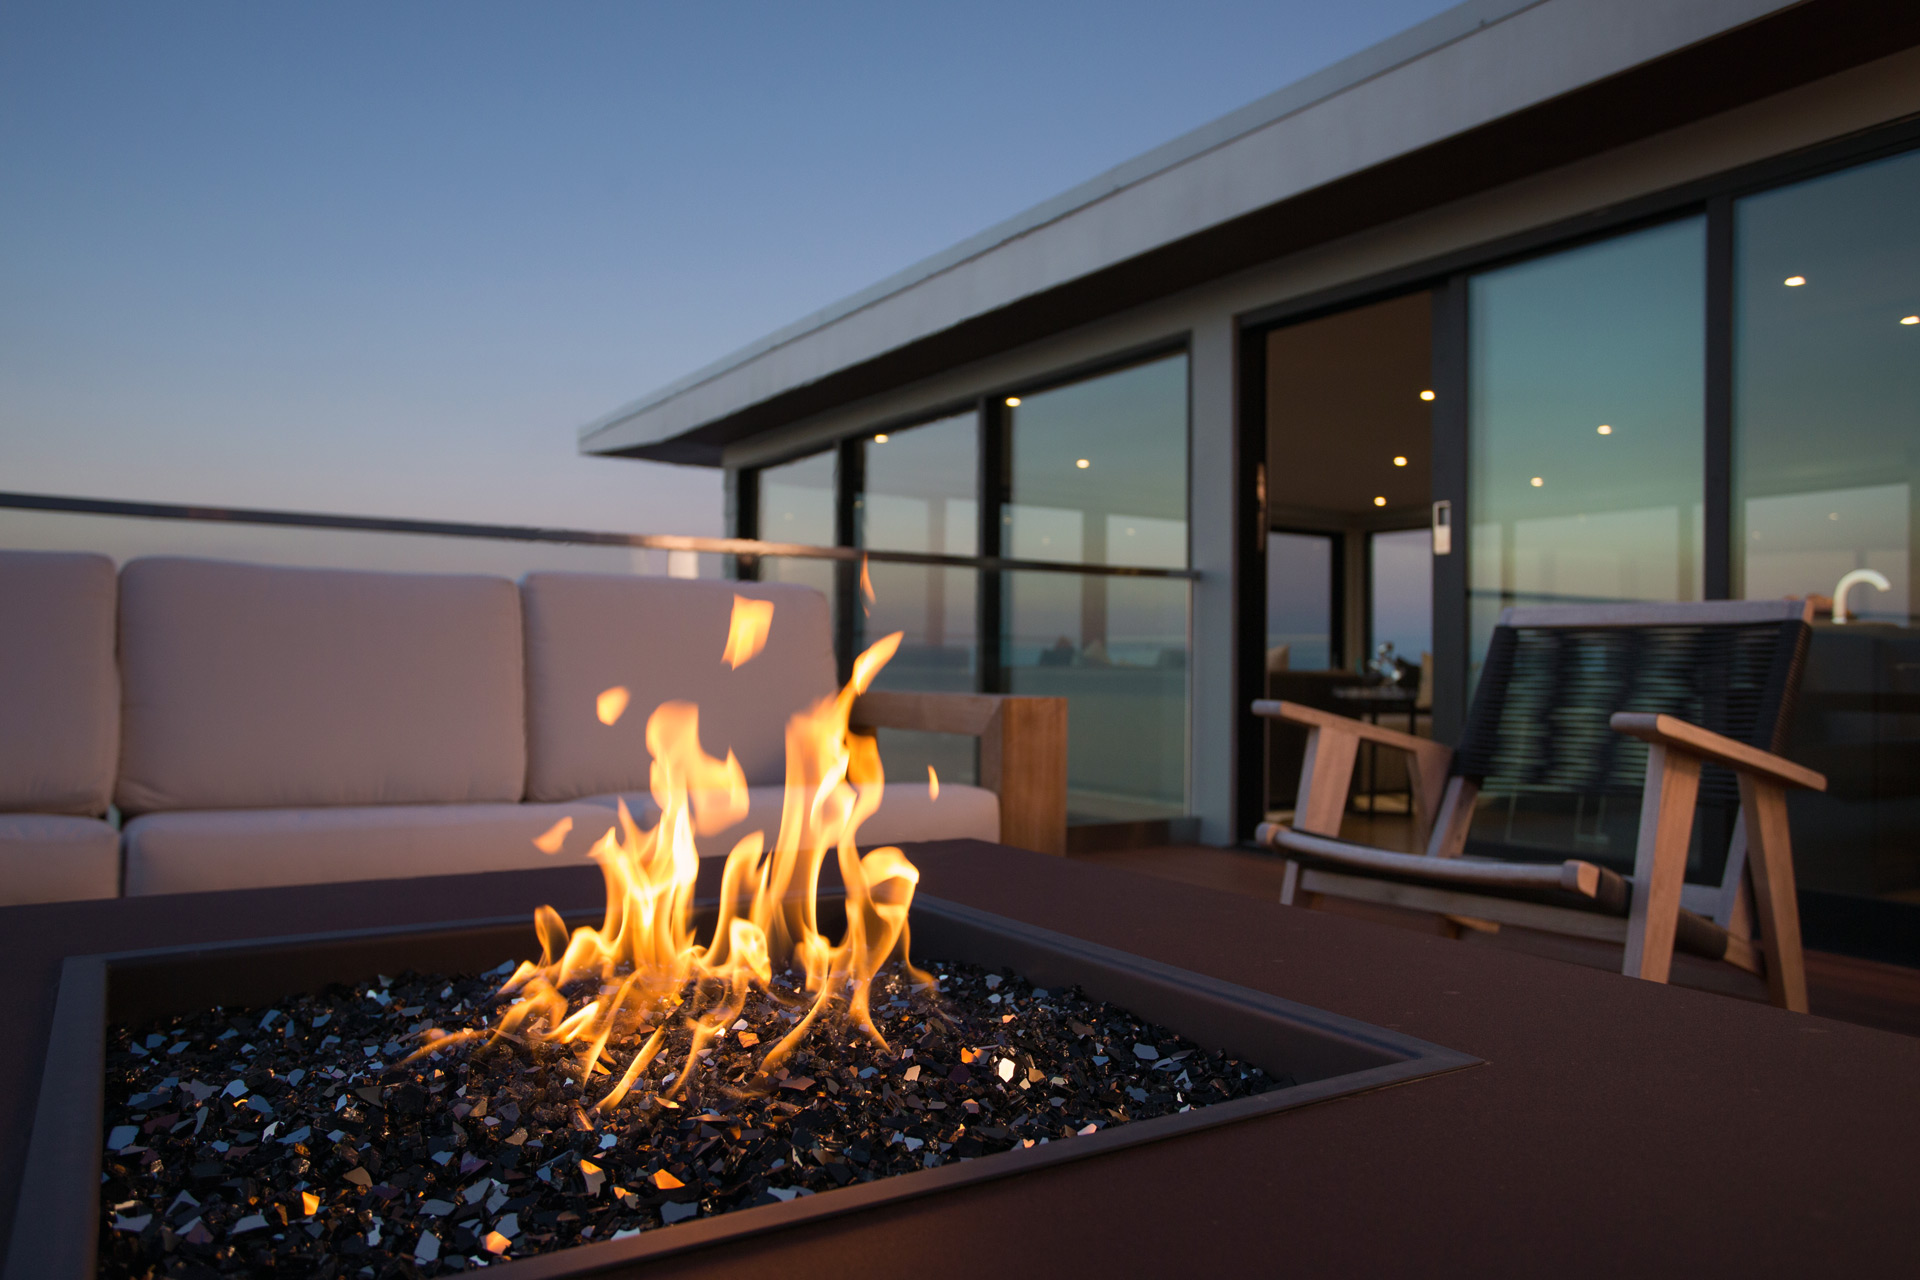 Chicago illinois exterior architectural photography luxury for Luxury fireplaces luxury homes